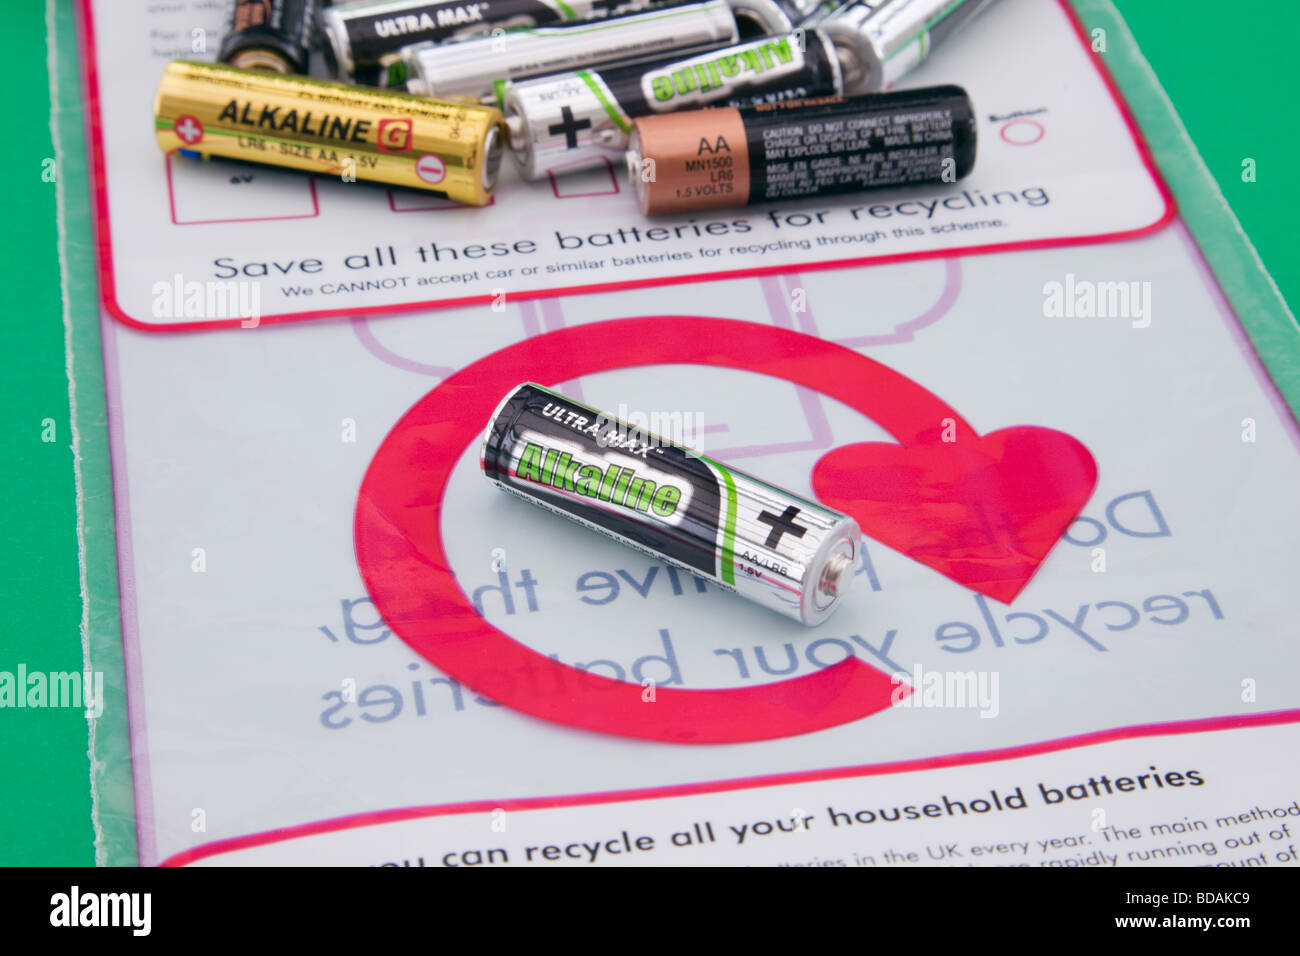 Studio Britain UK Used household batteries and battery recycling bag with logo - Stock Image